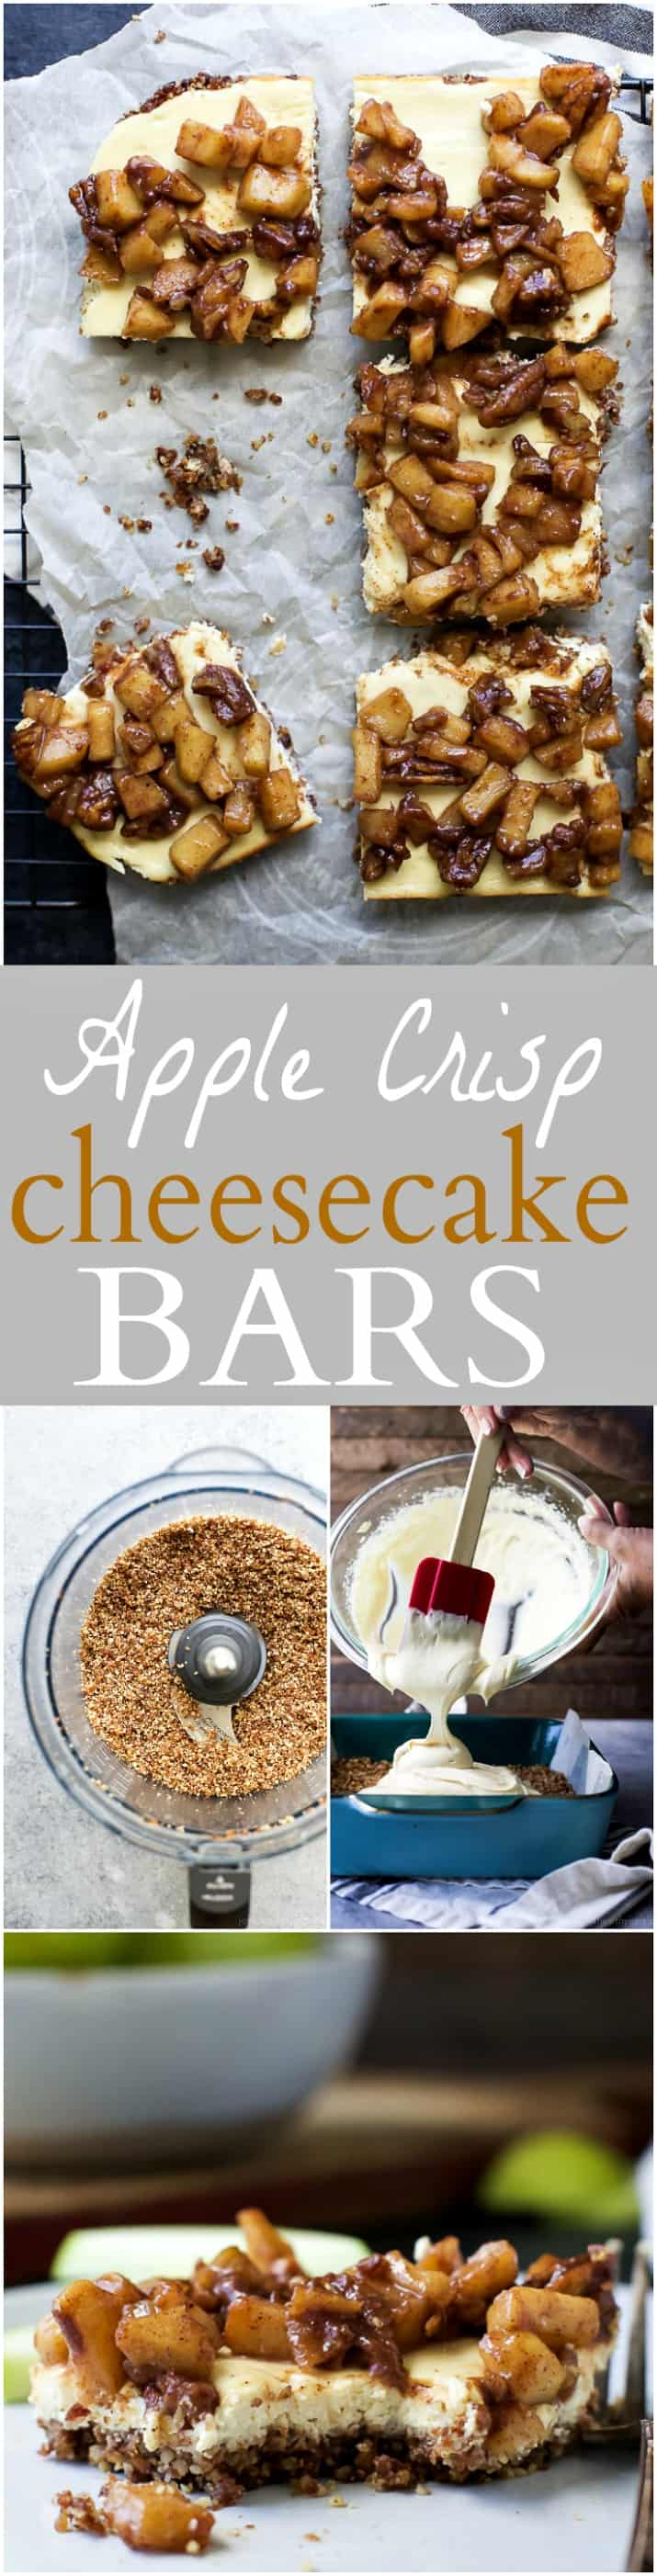 Pinterest image for Apple Crisp Cheesecake Bars